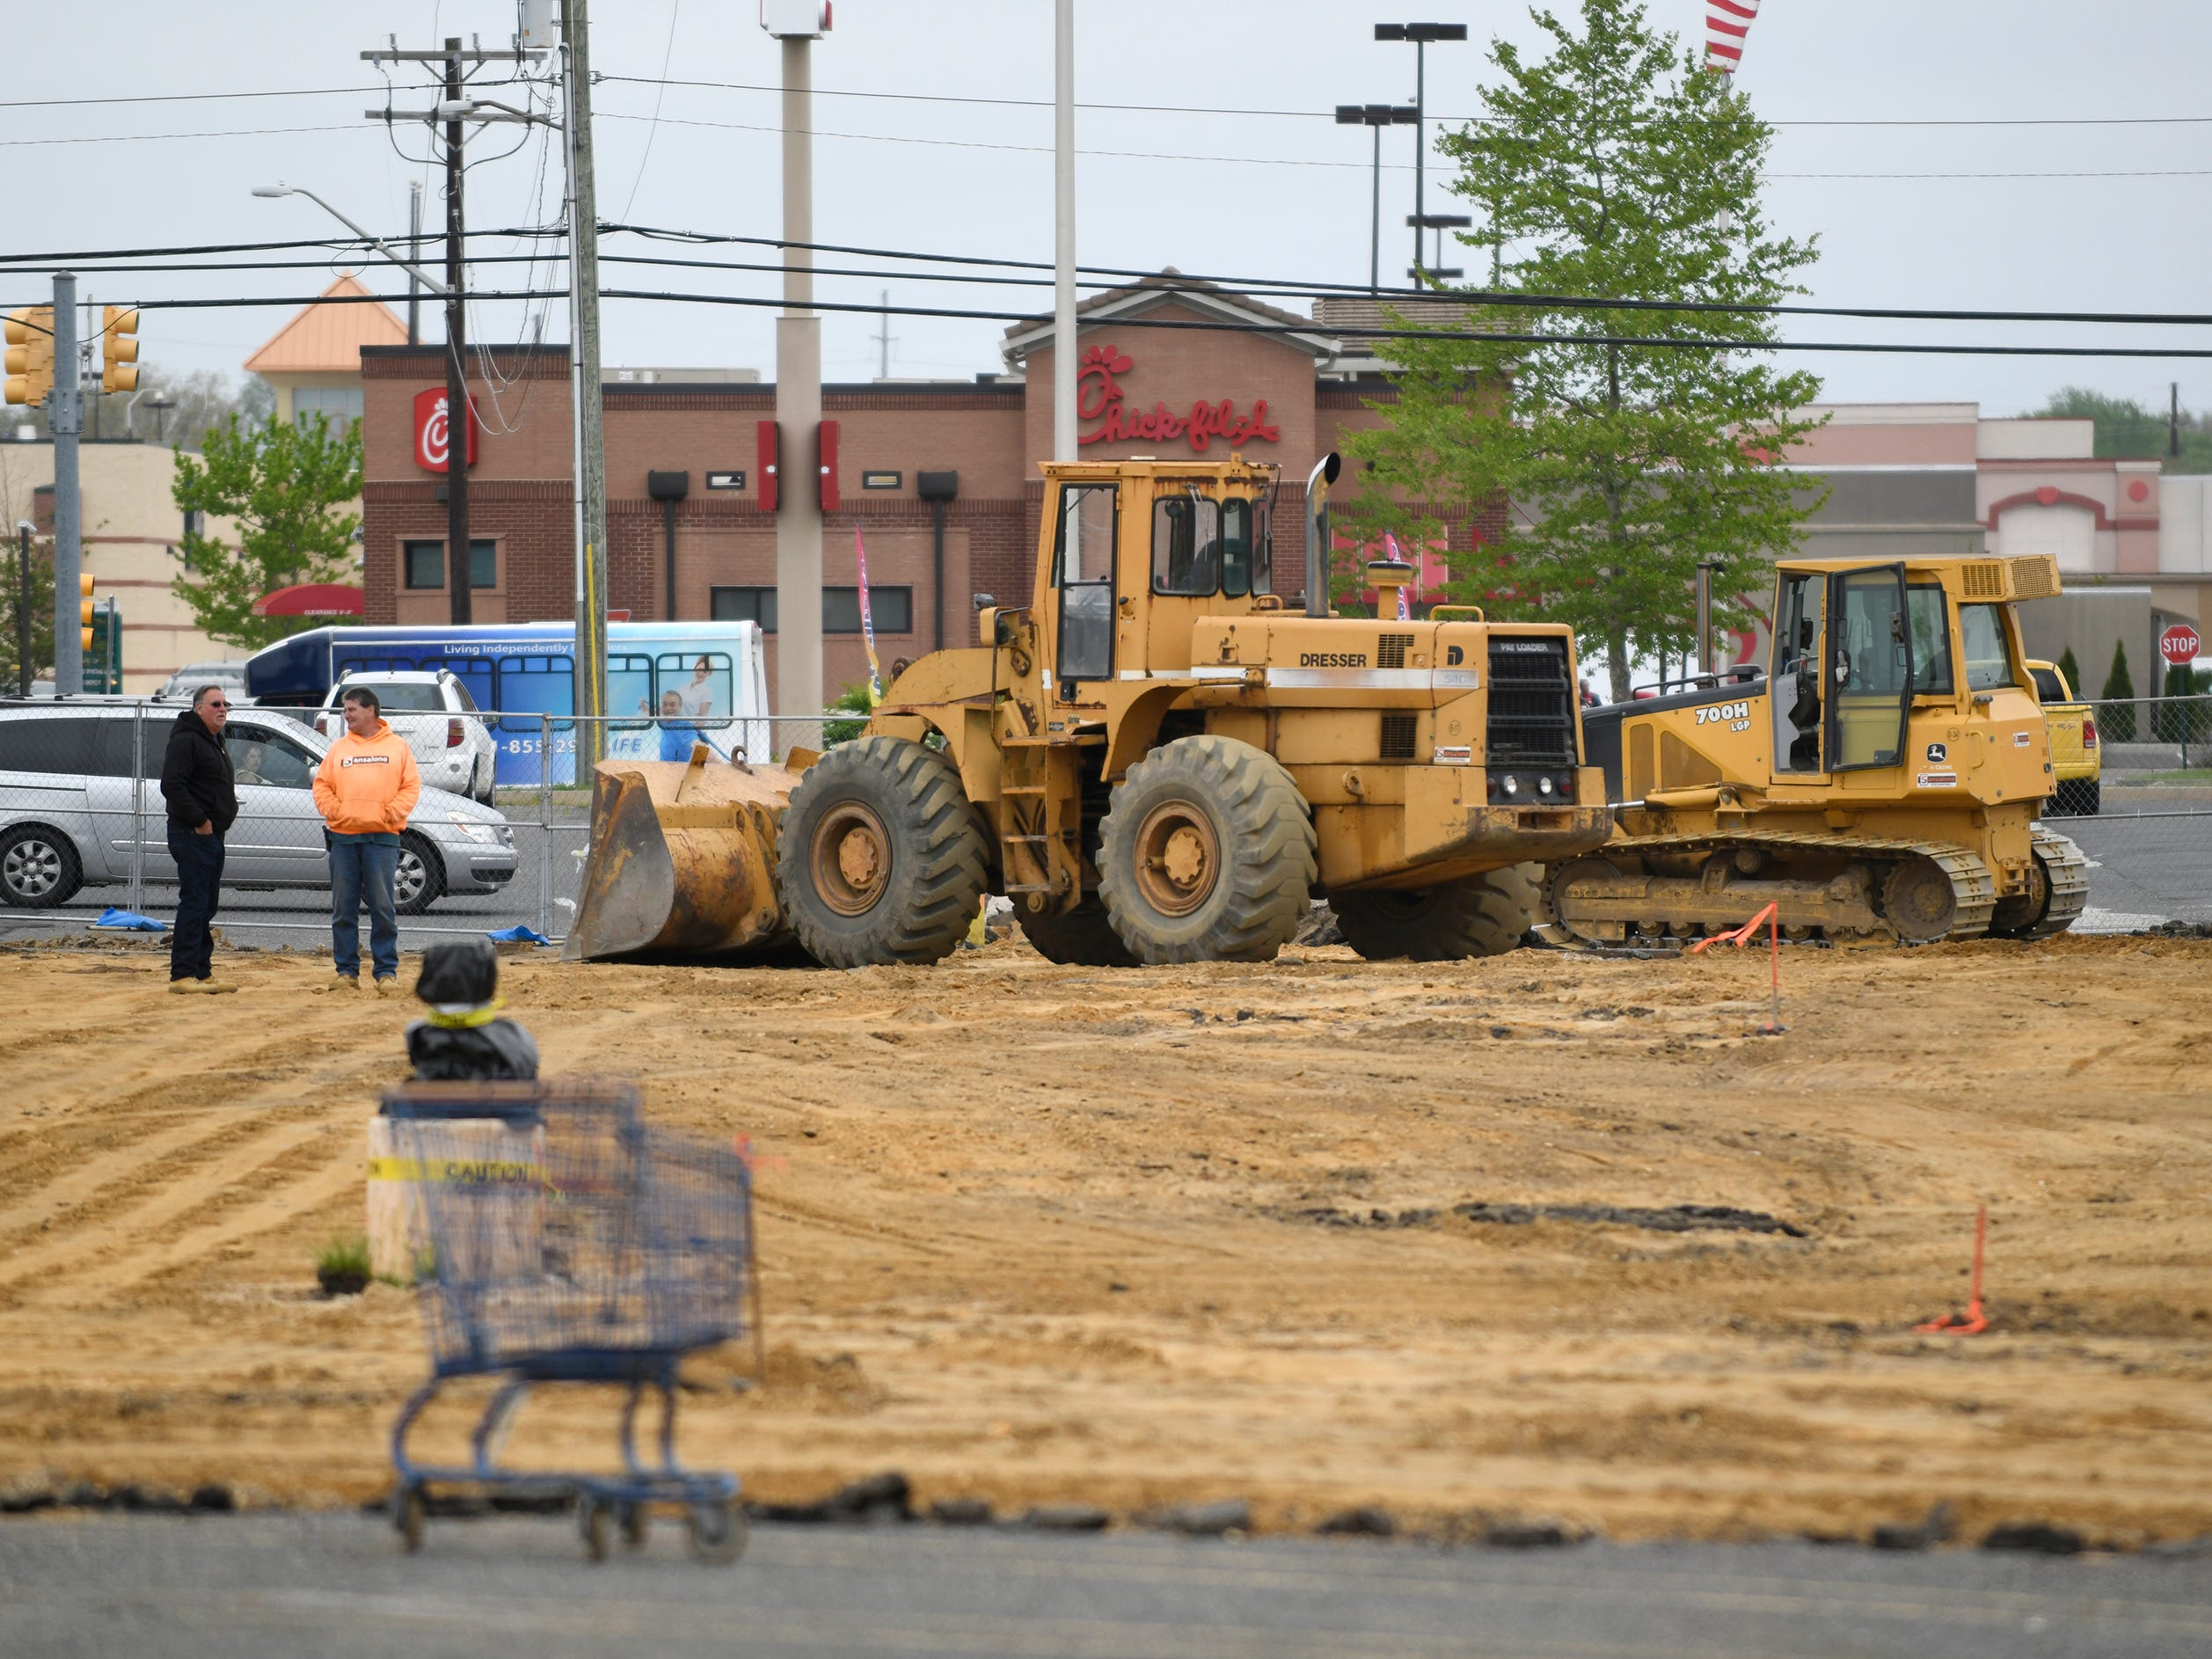 A Sansalone Excavating construction crew worked on removing asphalt in front of Raymour & Flanigan to clear the way for a new ALDI supermarket next to the Olive Garden on South Delsea Drive in Vineland on Wednesday, May 1, 2019.